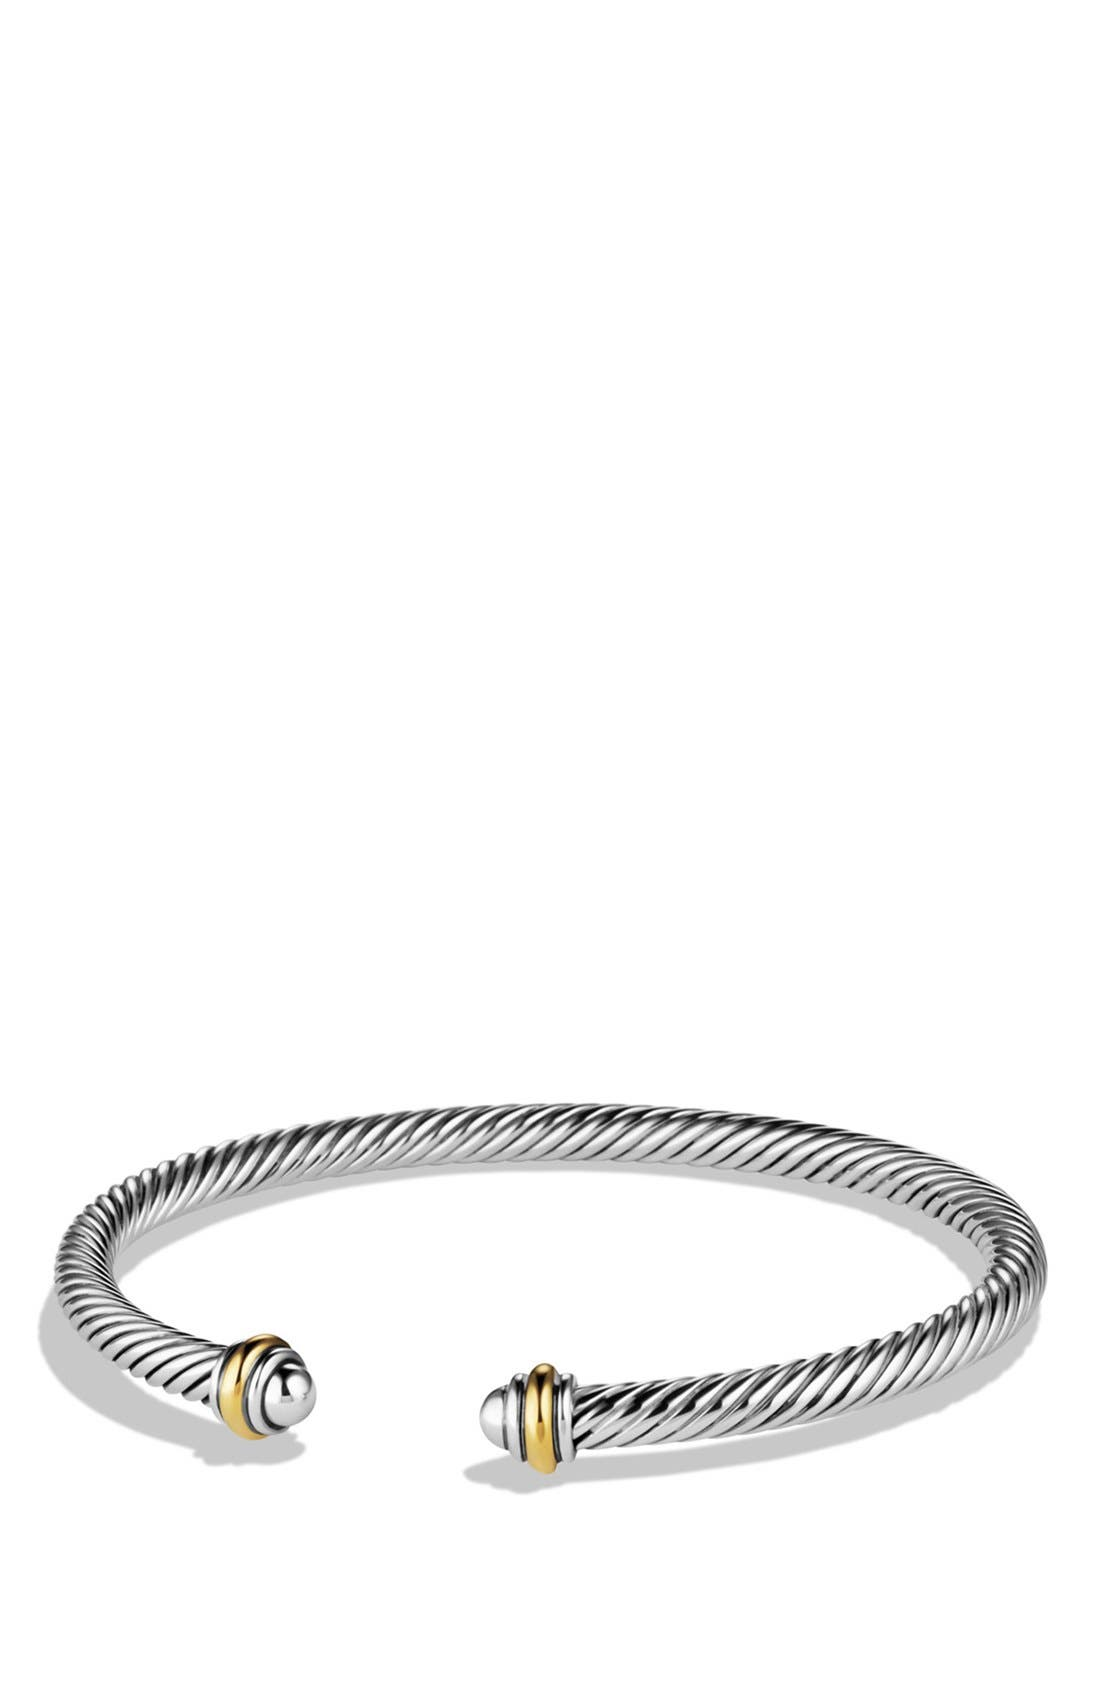 David Yurman 'Cable Classics' Bracelet with Gold